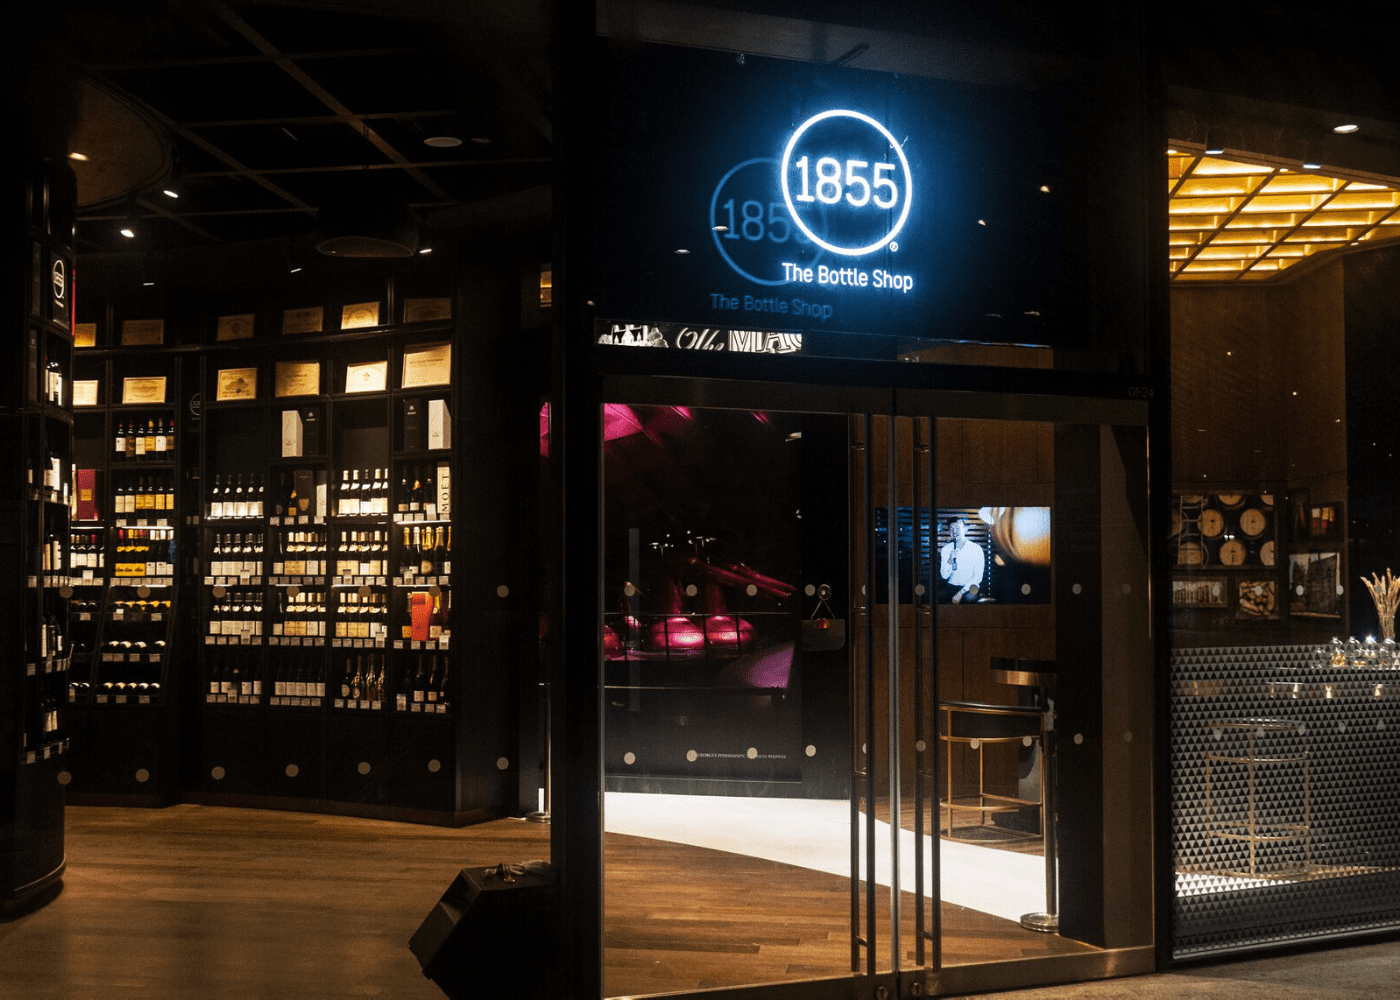 1855 The Bottle Shop | Liquor stores in Singapore